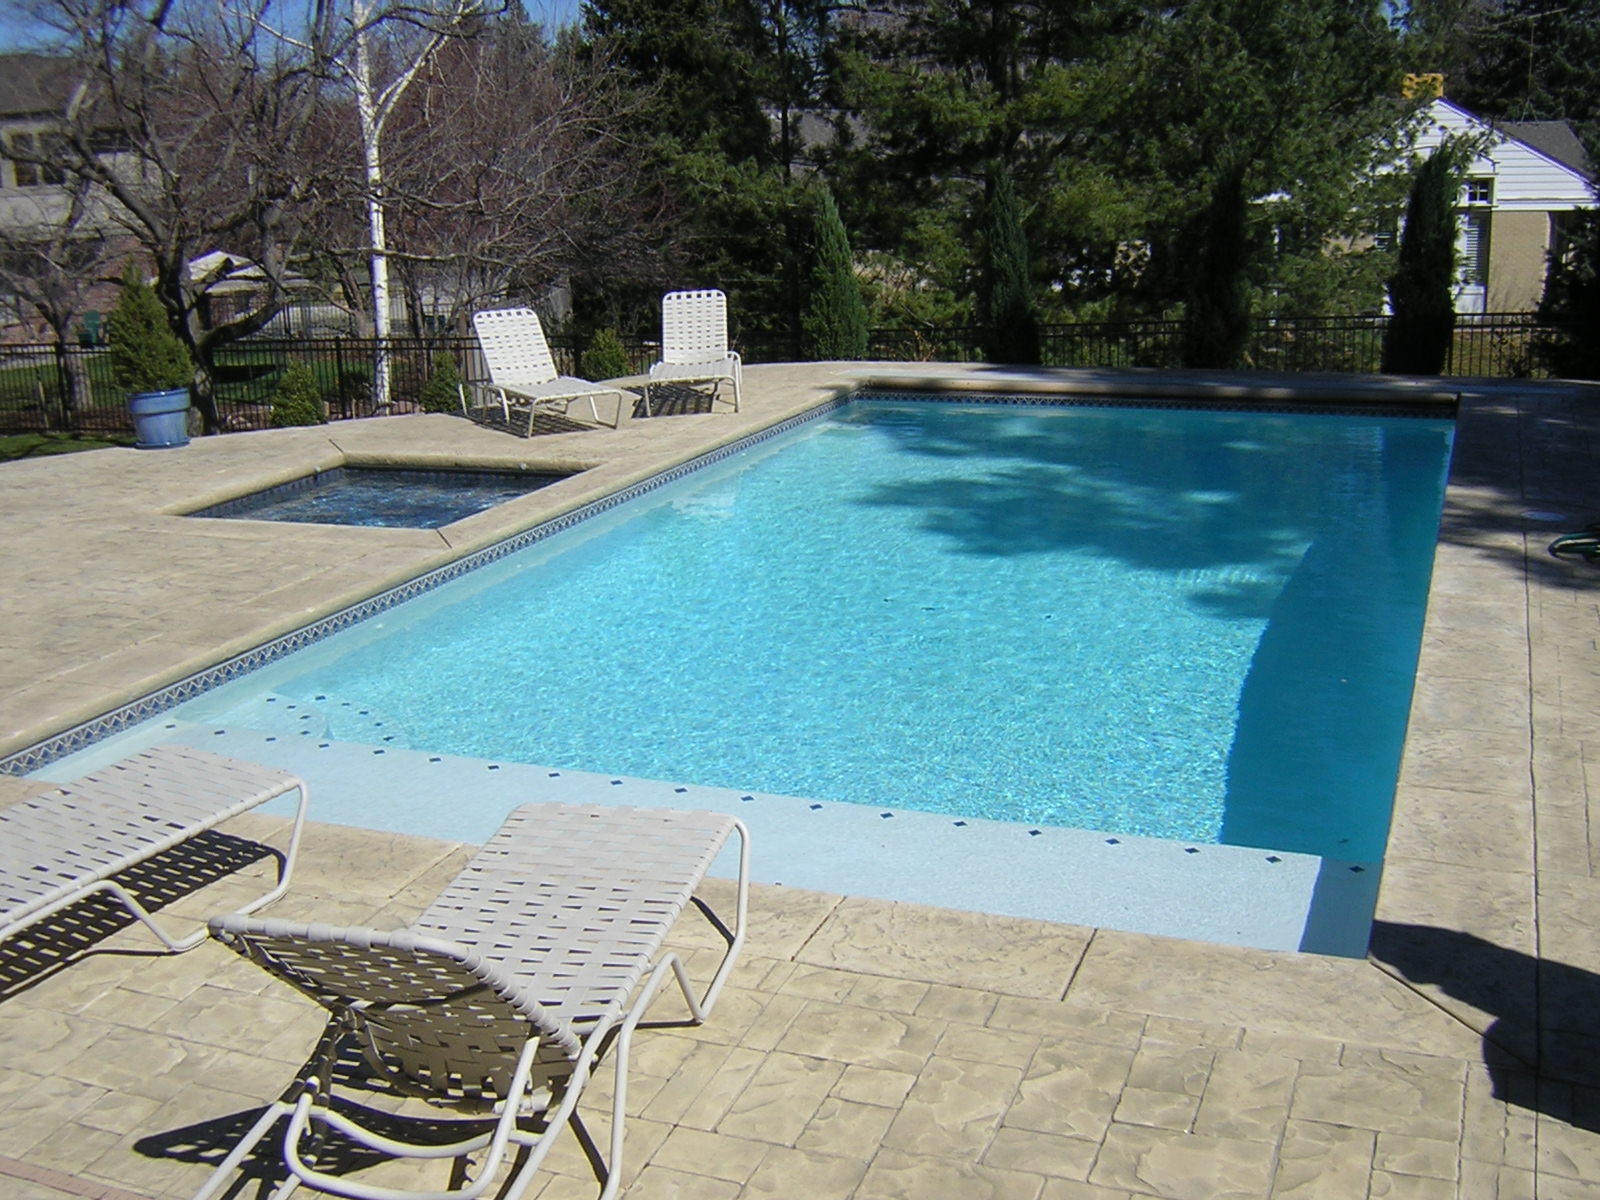 Pool and spa combos pool and spa experts pool and spa for Pool and spa images